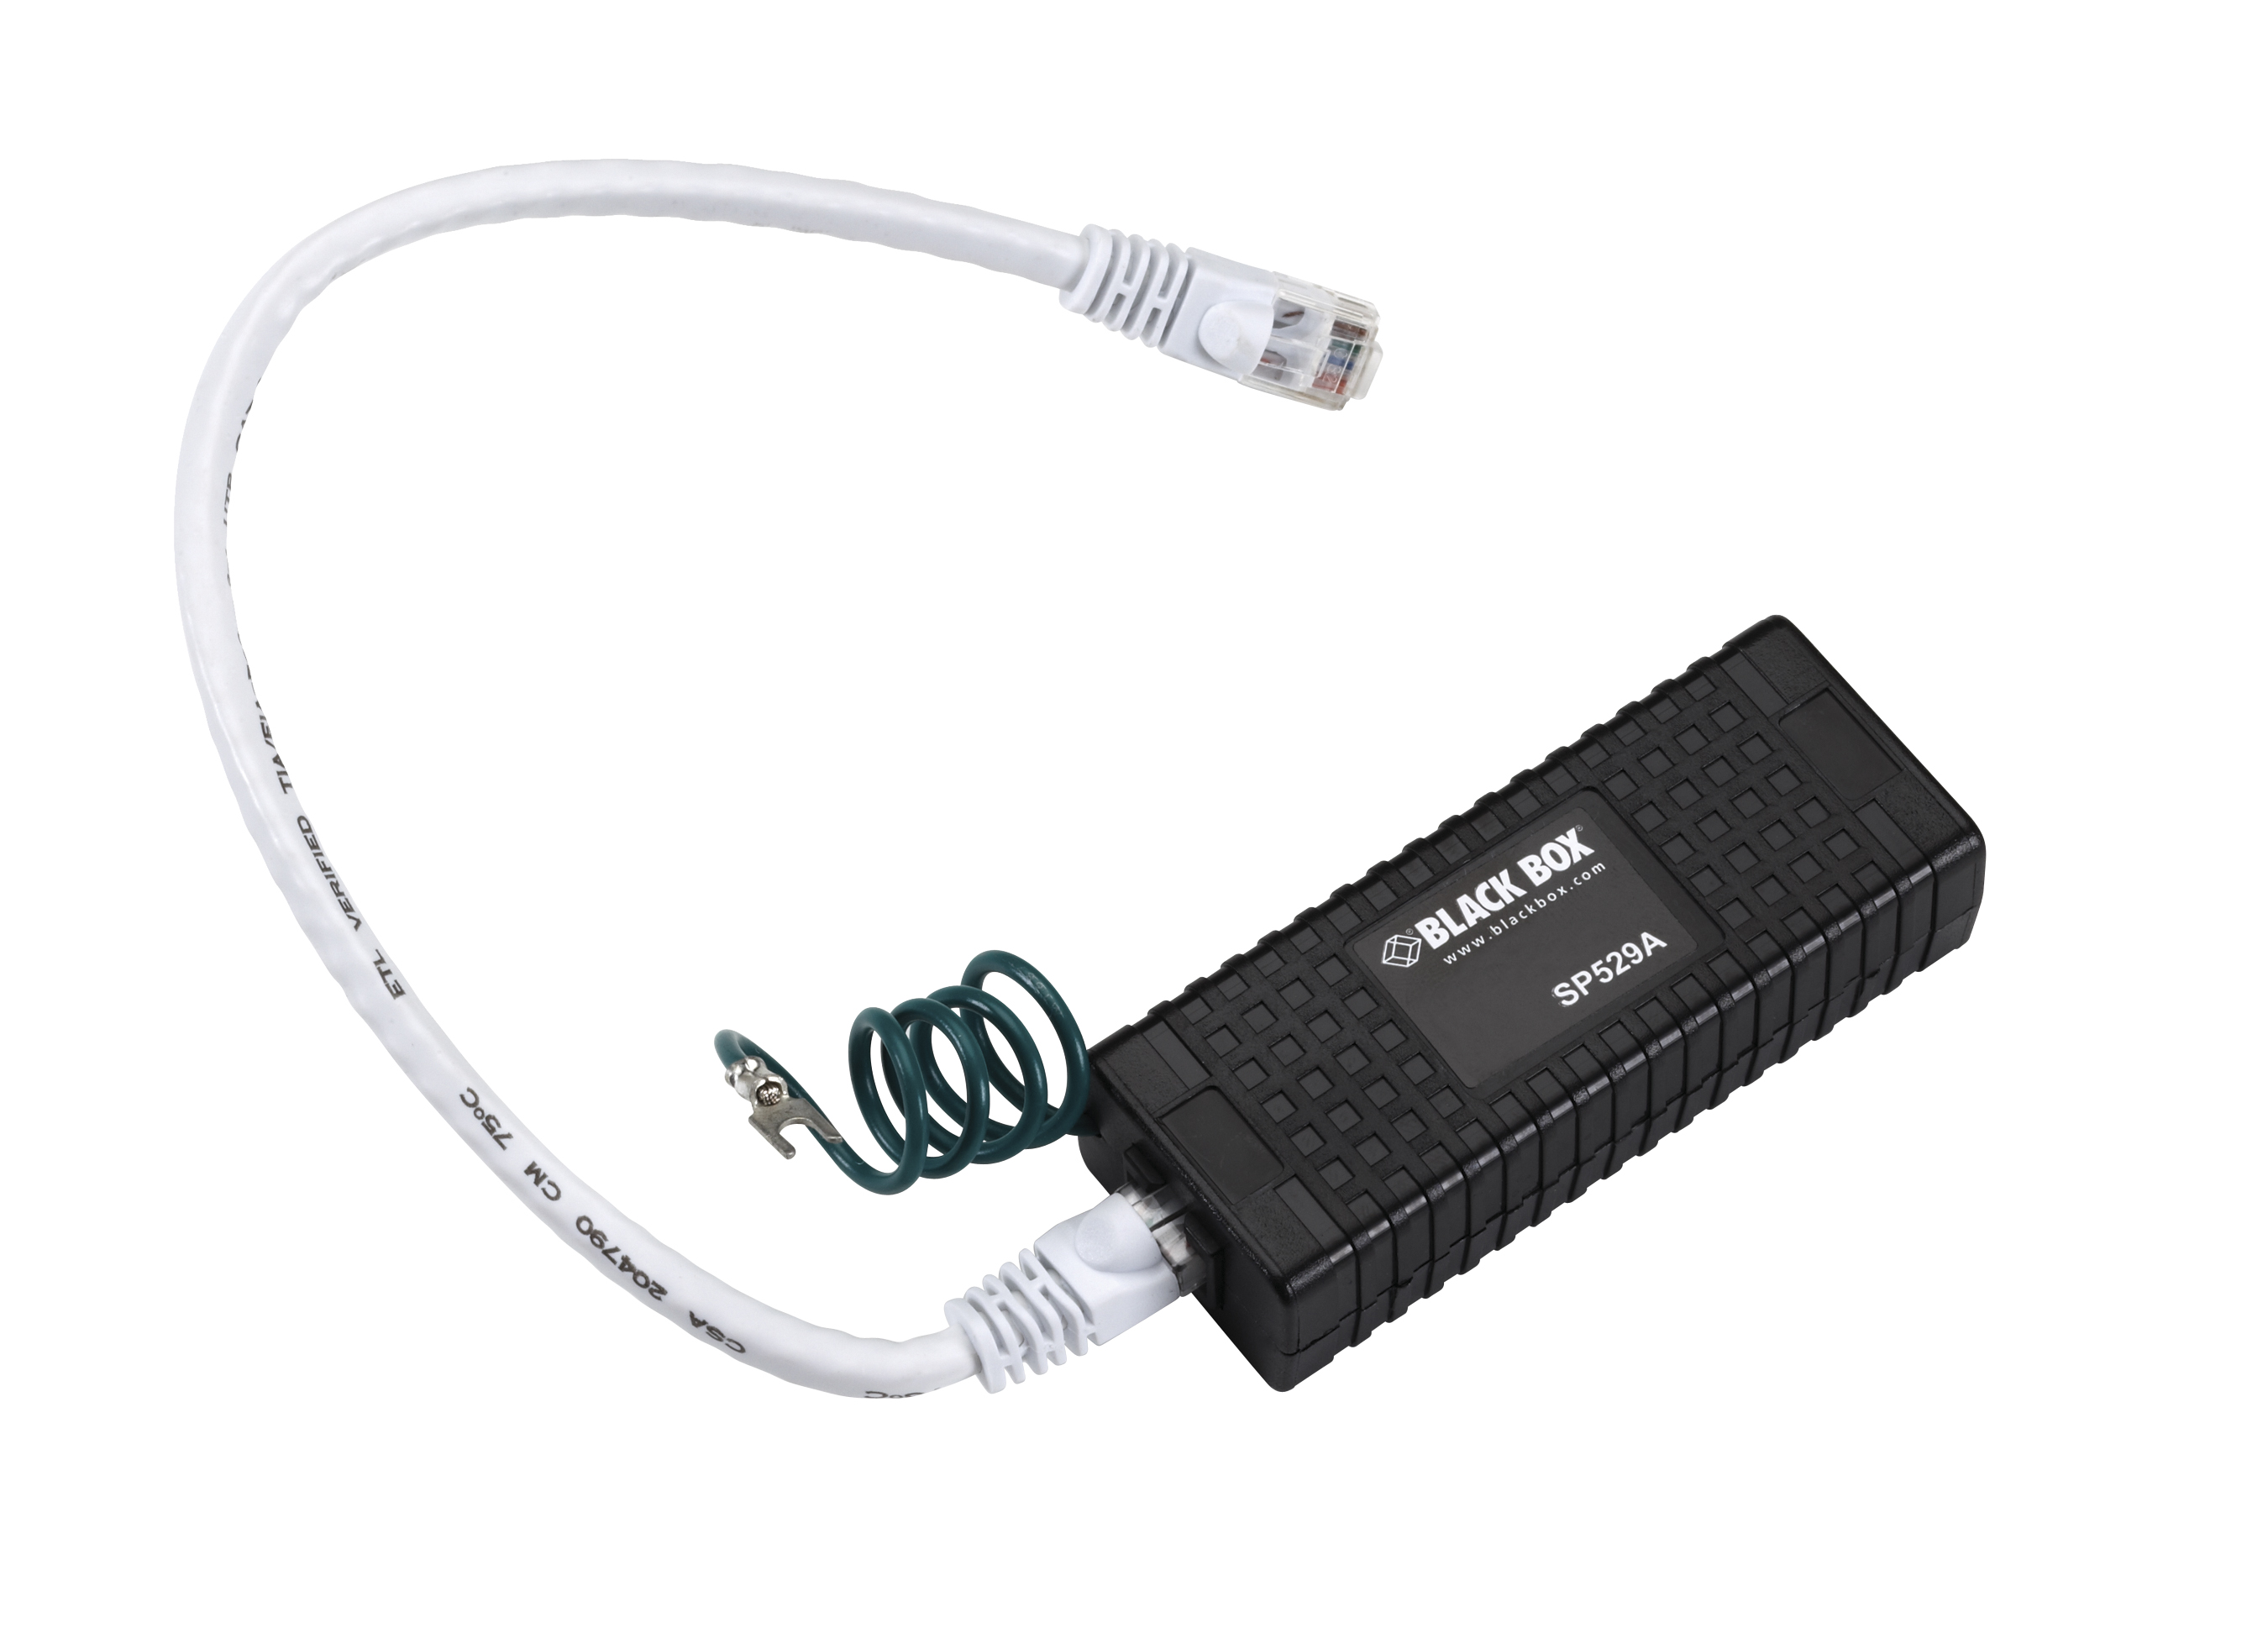 Gig In-Line Surge Protector